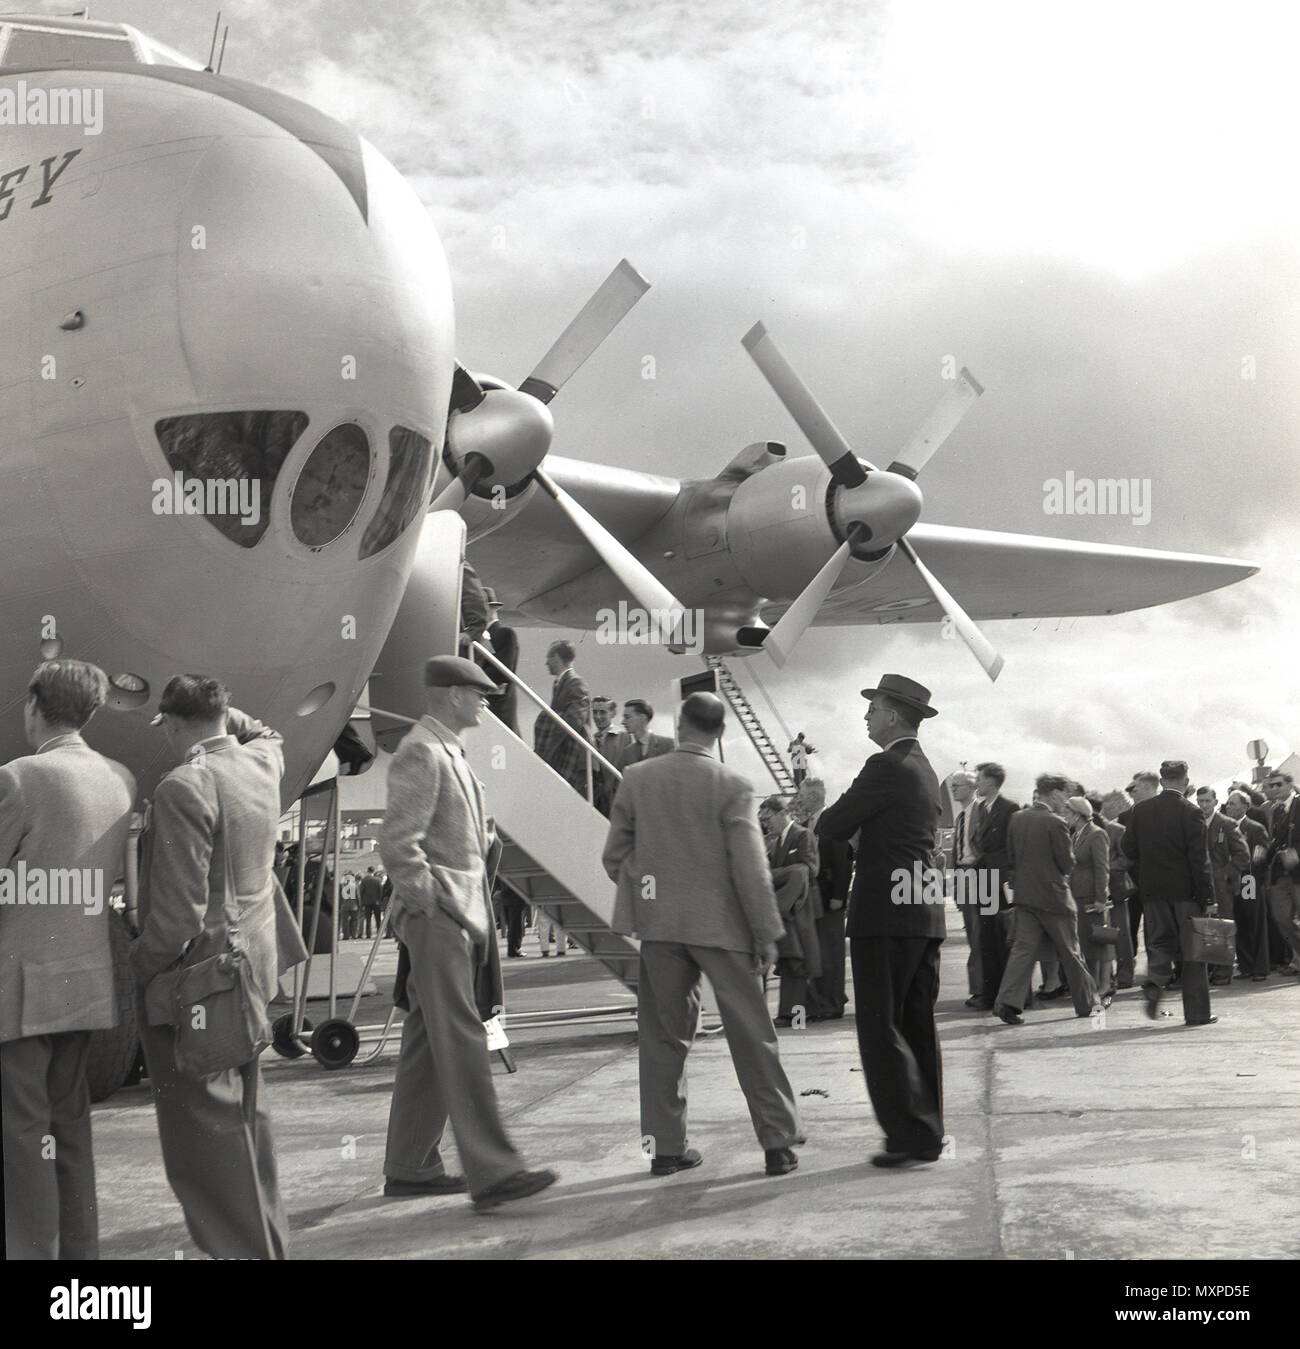 1950s, press launch for a new propeller-driven aircraft, England, UK. - Stock Image